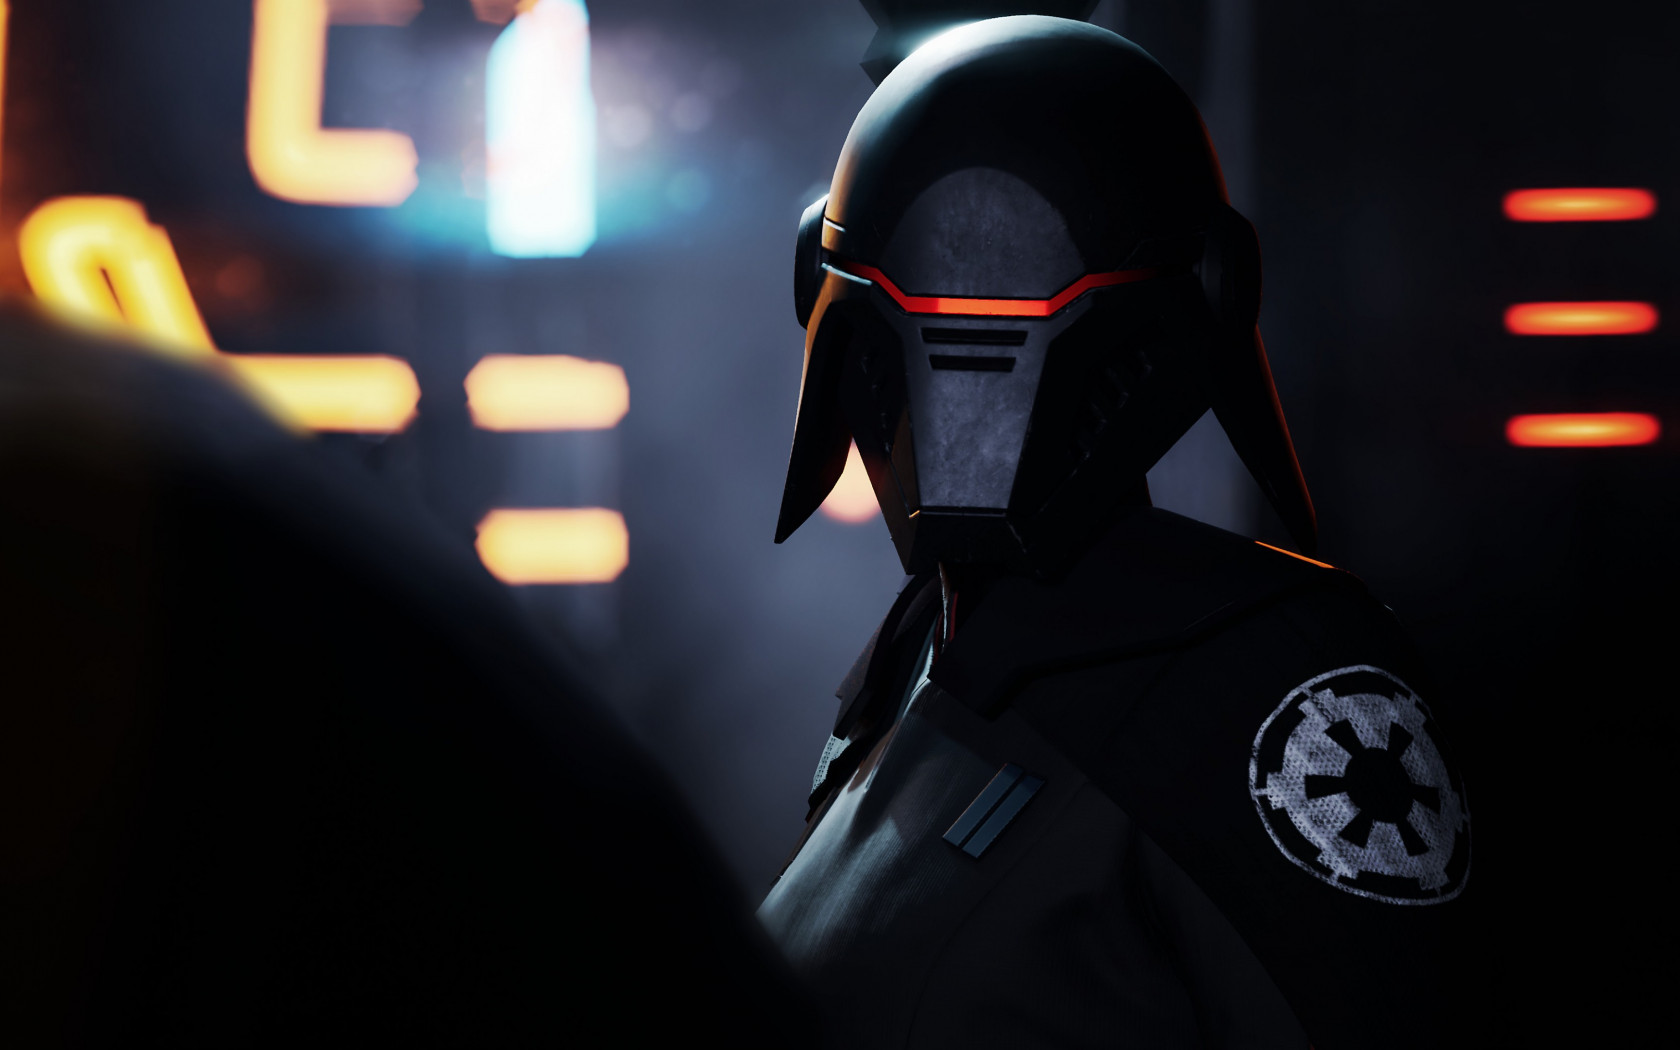 Star Wars Jedi: Fallen Order soldier wallpaper 1680x1050